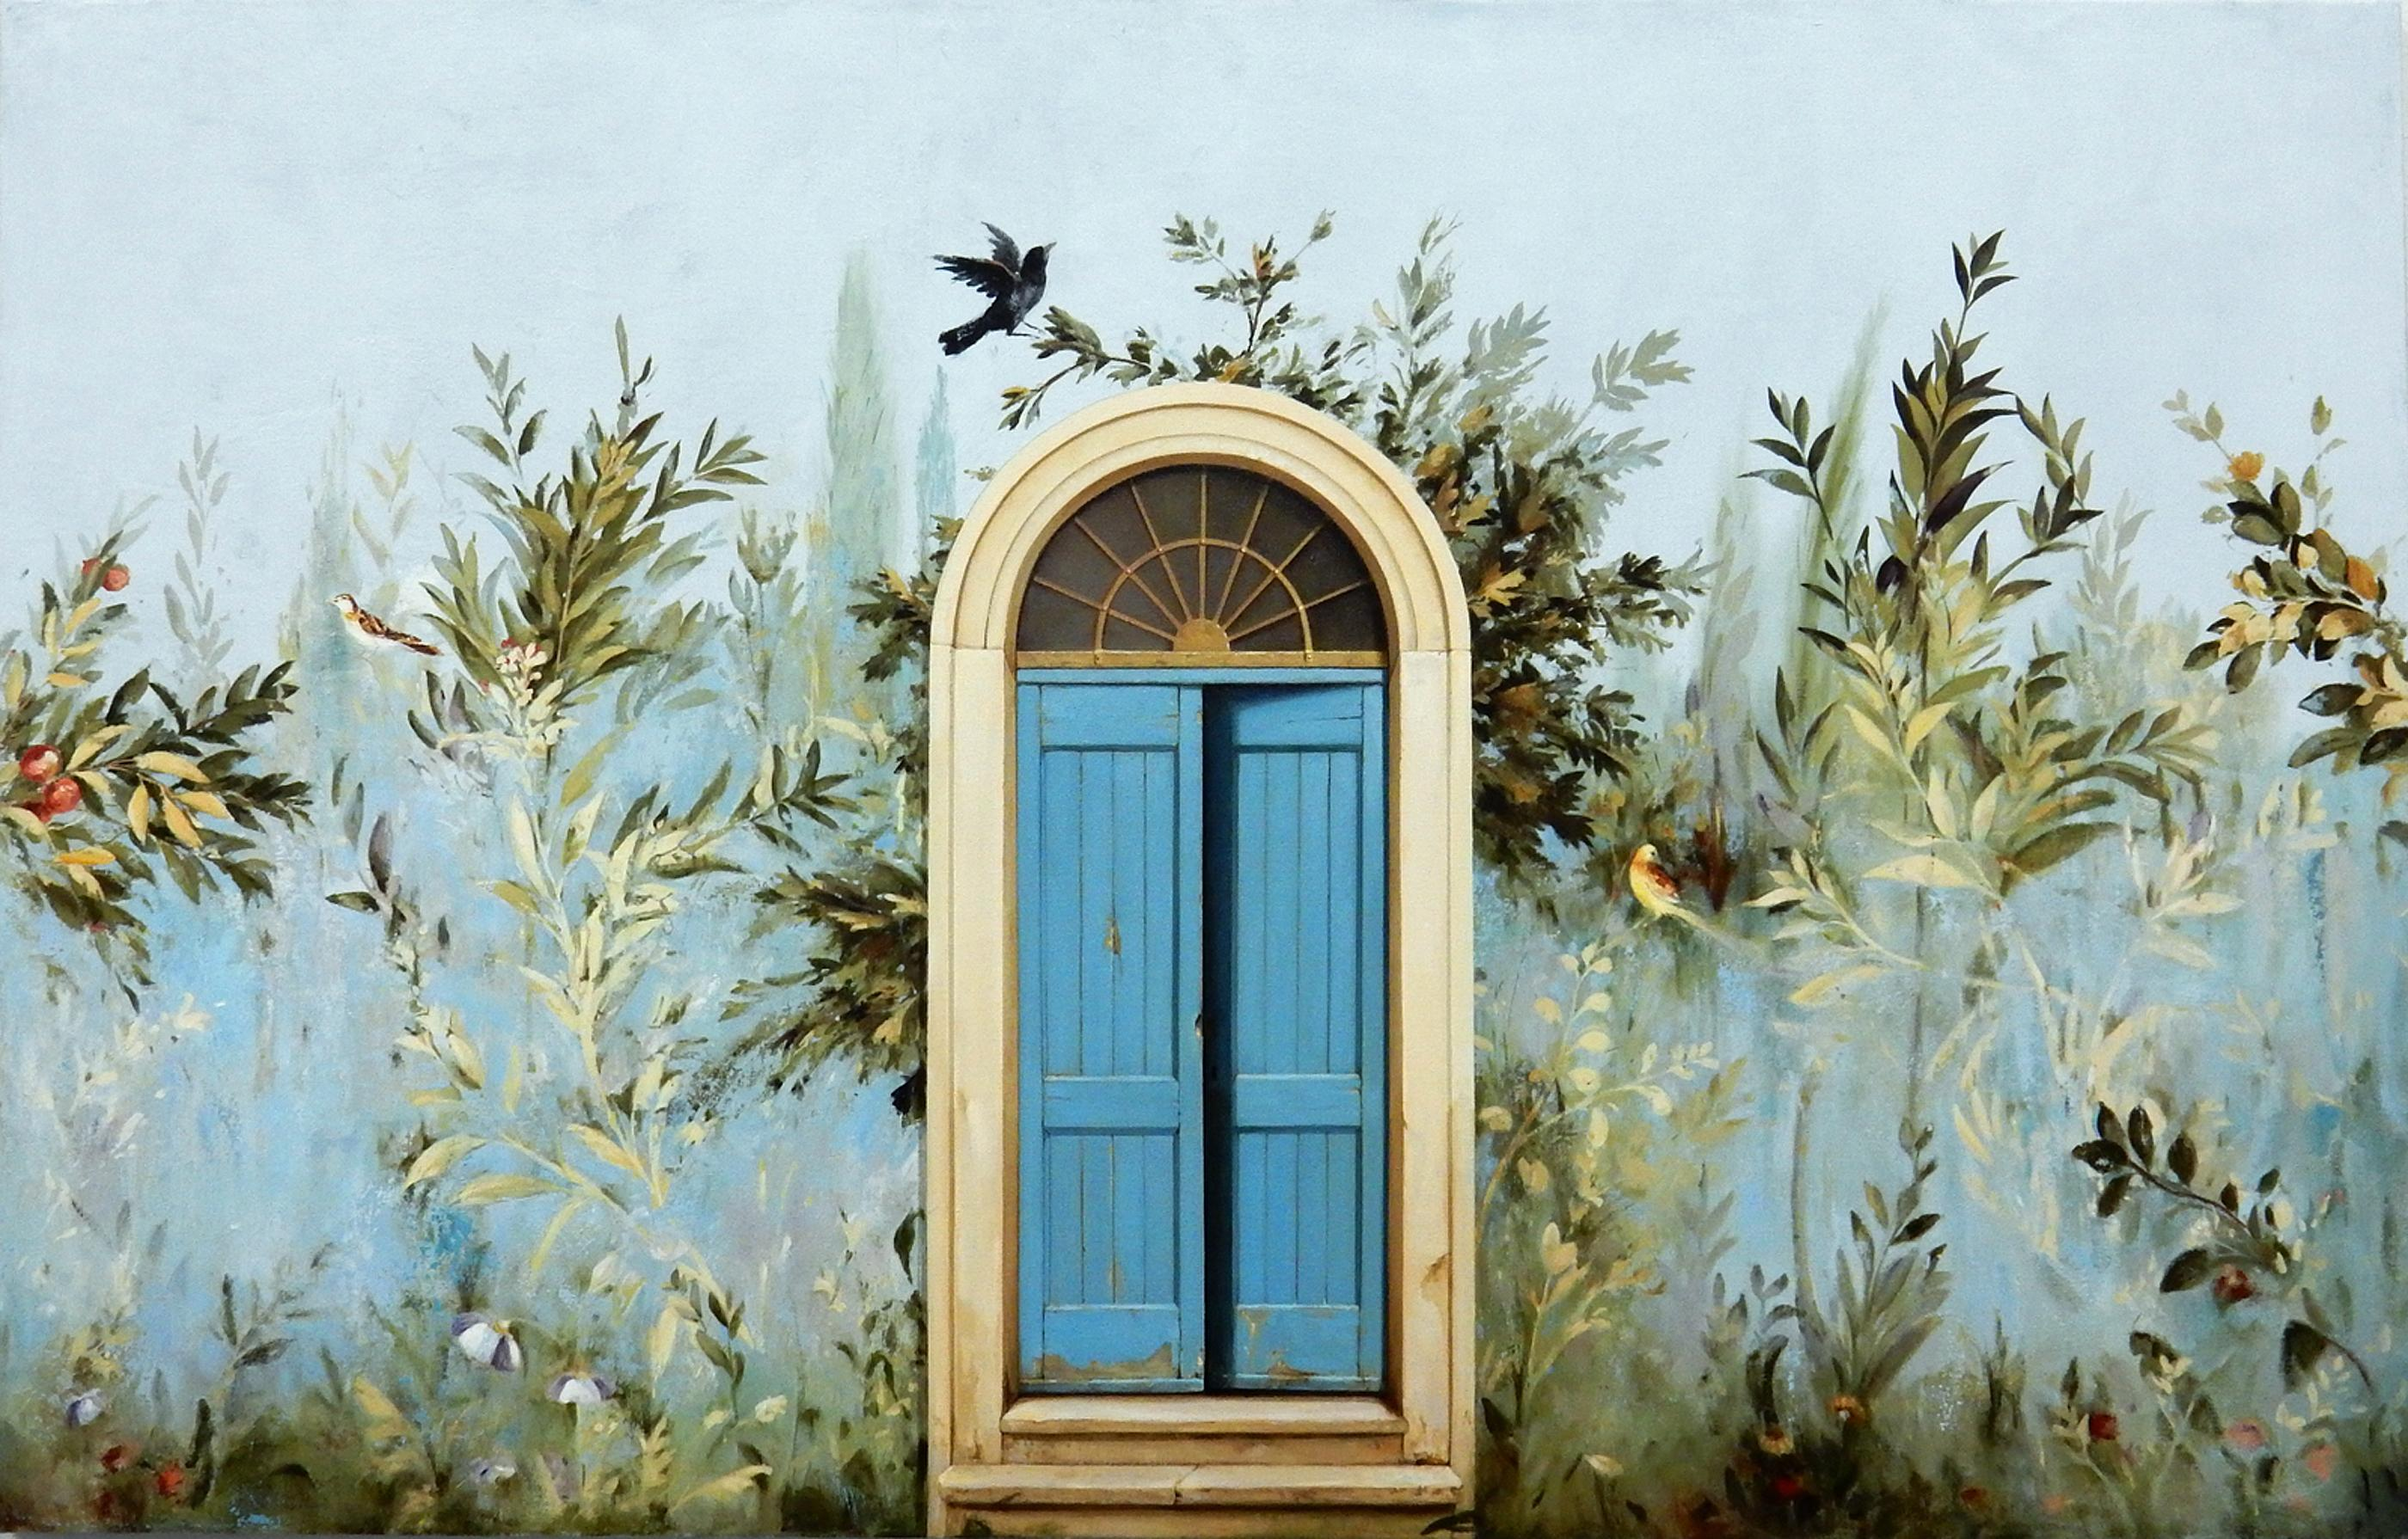 Uscita - Large Scale Trompe L'oeil Gardenscape Inspired by Ancient Roman Frescos